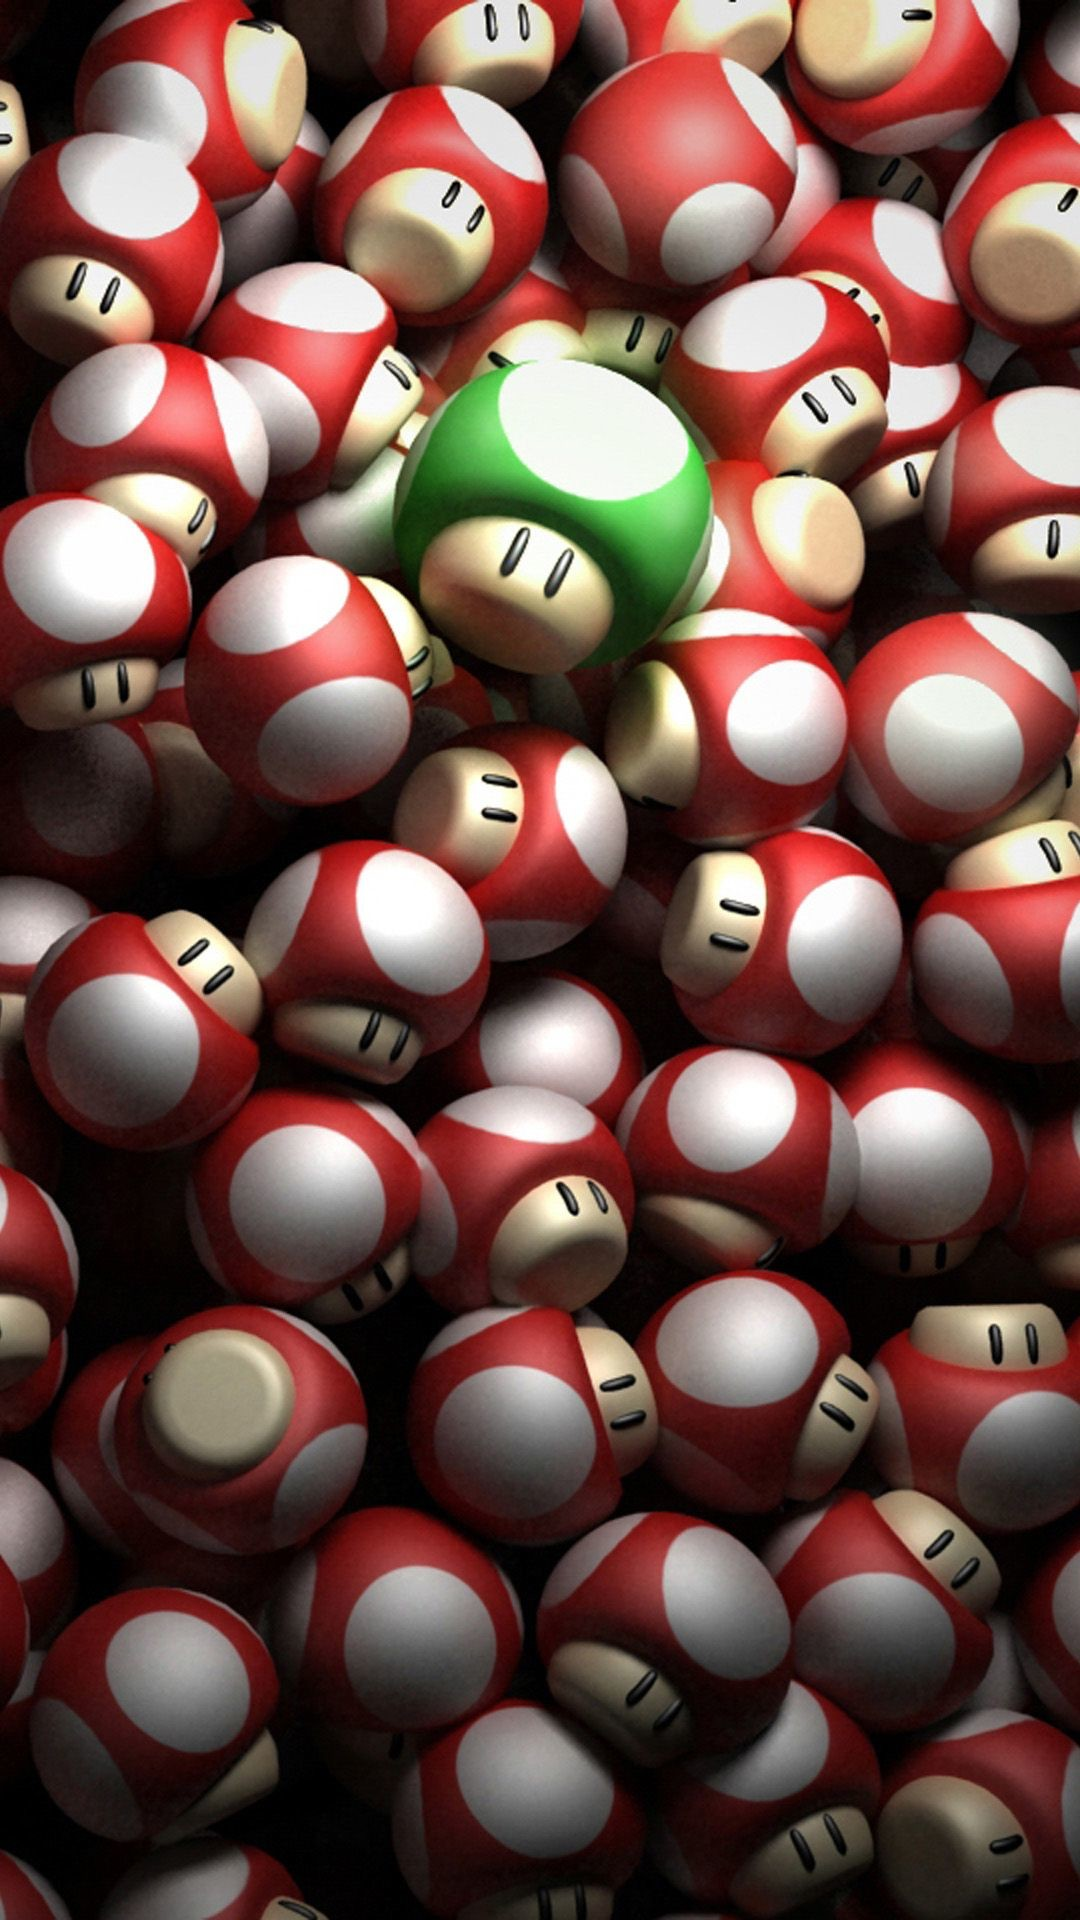 Res: 1080x1920, hd super mario mobile wallpapers mushrooms red green 1 up (JPEG Image, 1080  × 1920 pixels) - Scaled (31%)